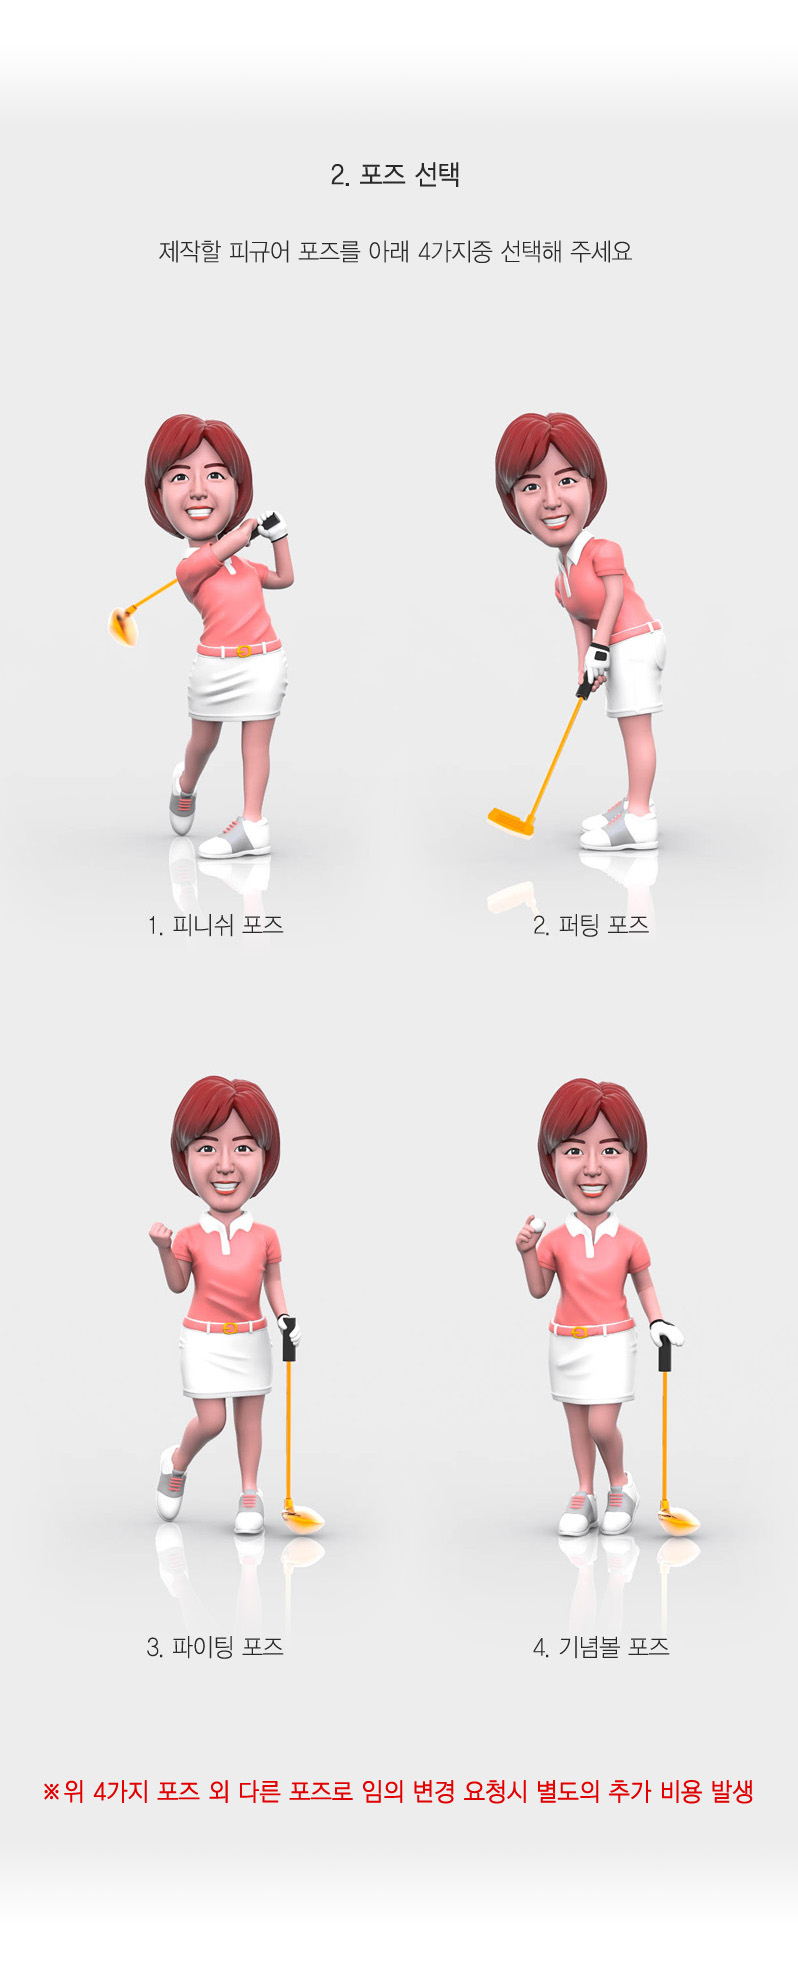 golf_custom_pose2_woman